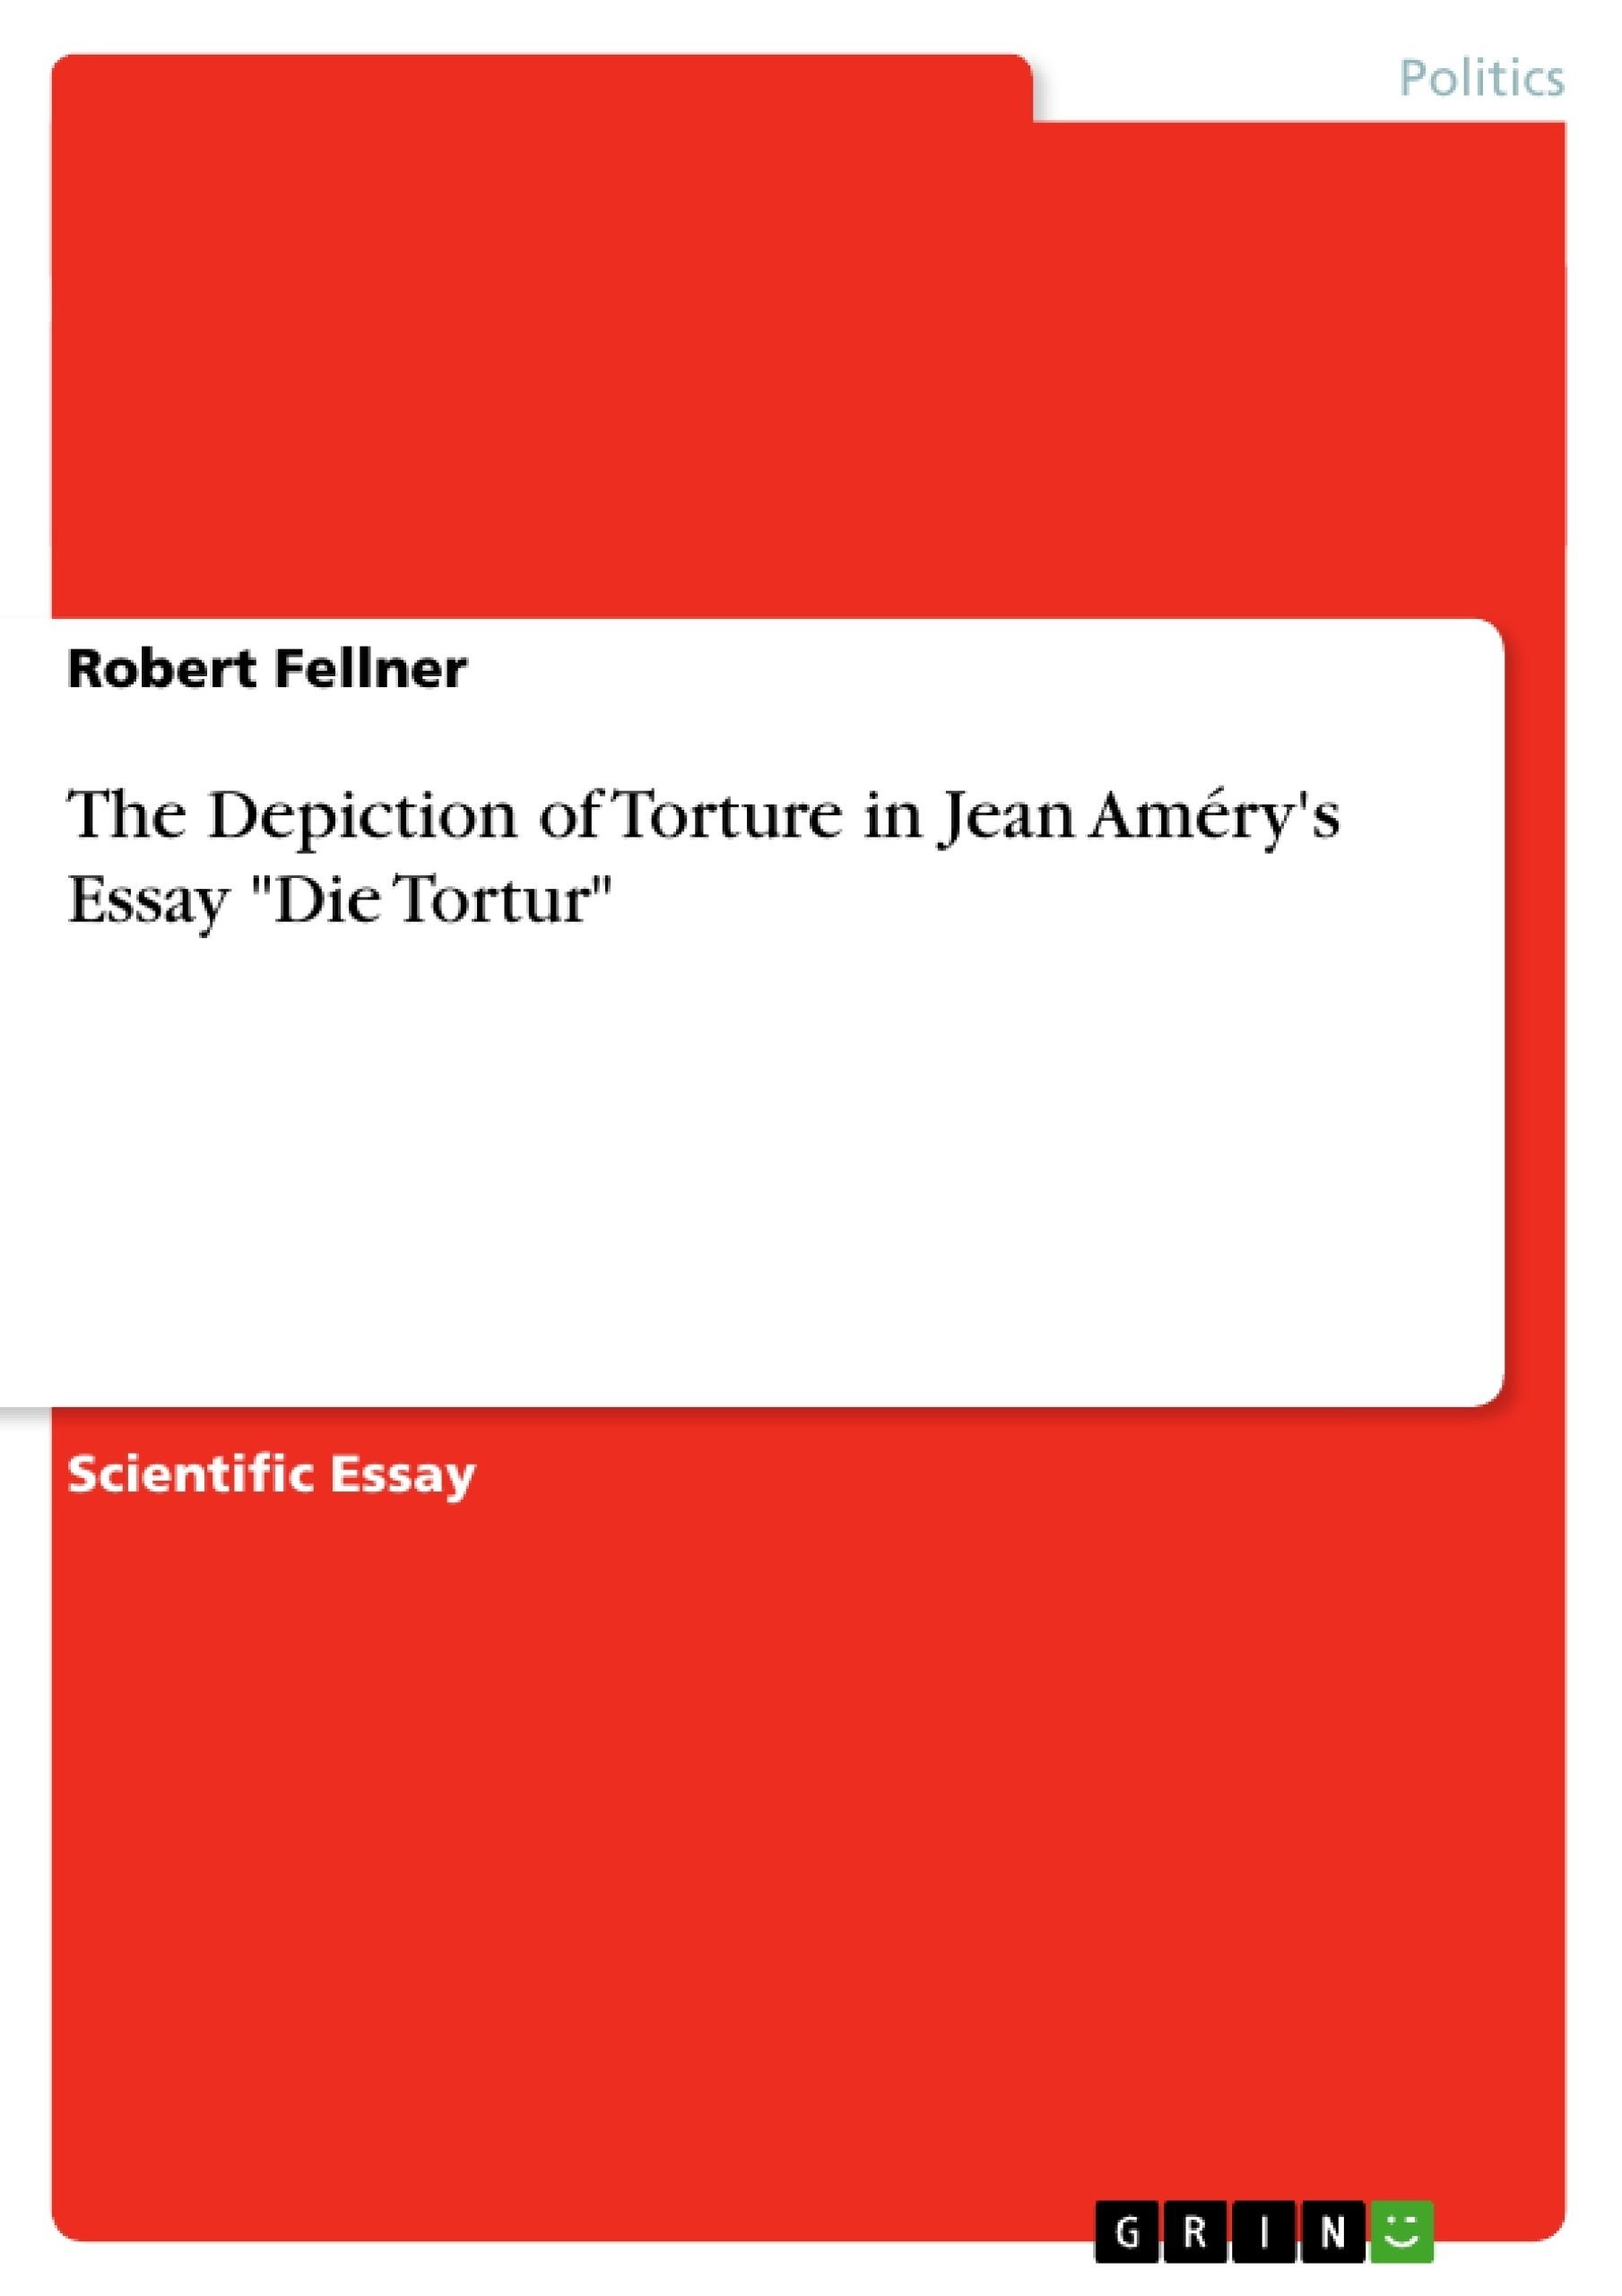 the depiction of torture in jean amery s essay die tortur  upload your own papers earn money and win an iphone x